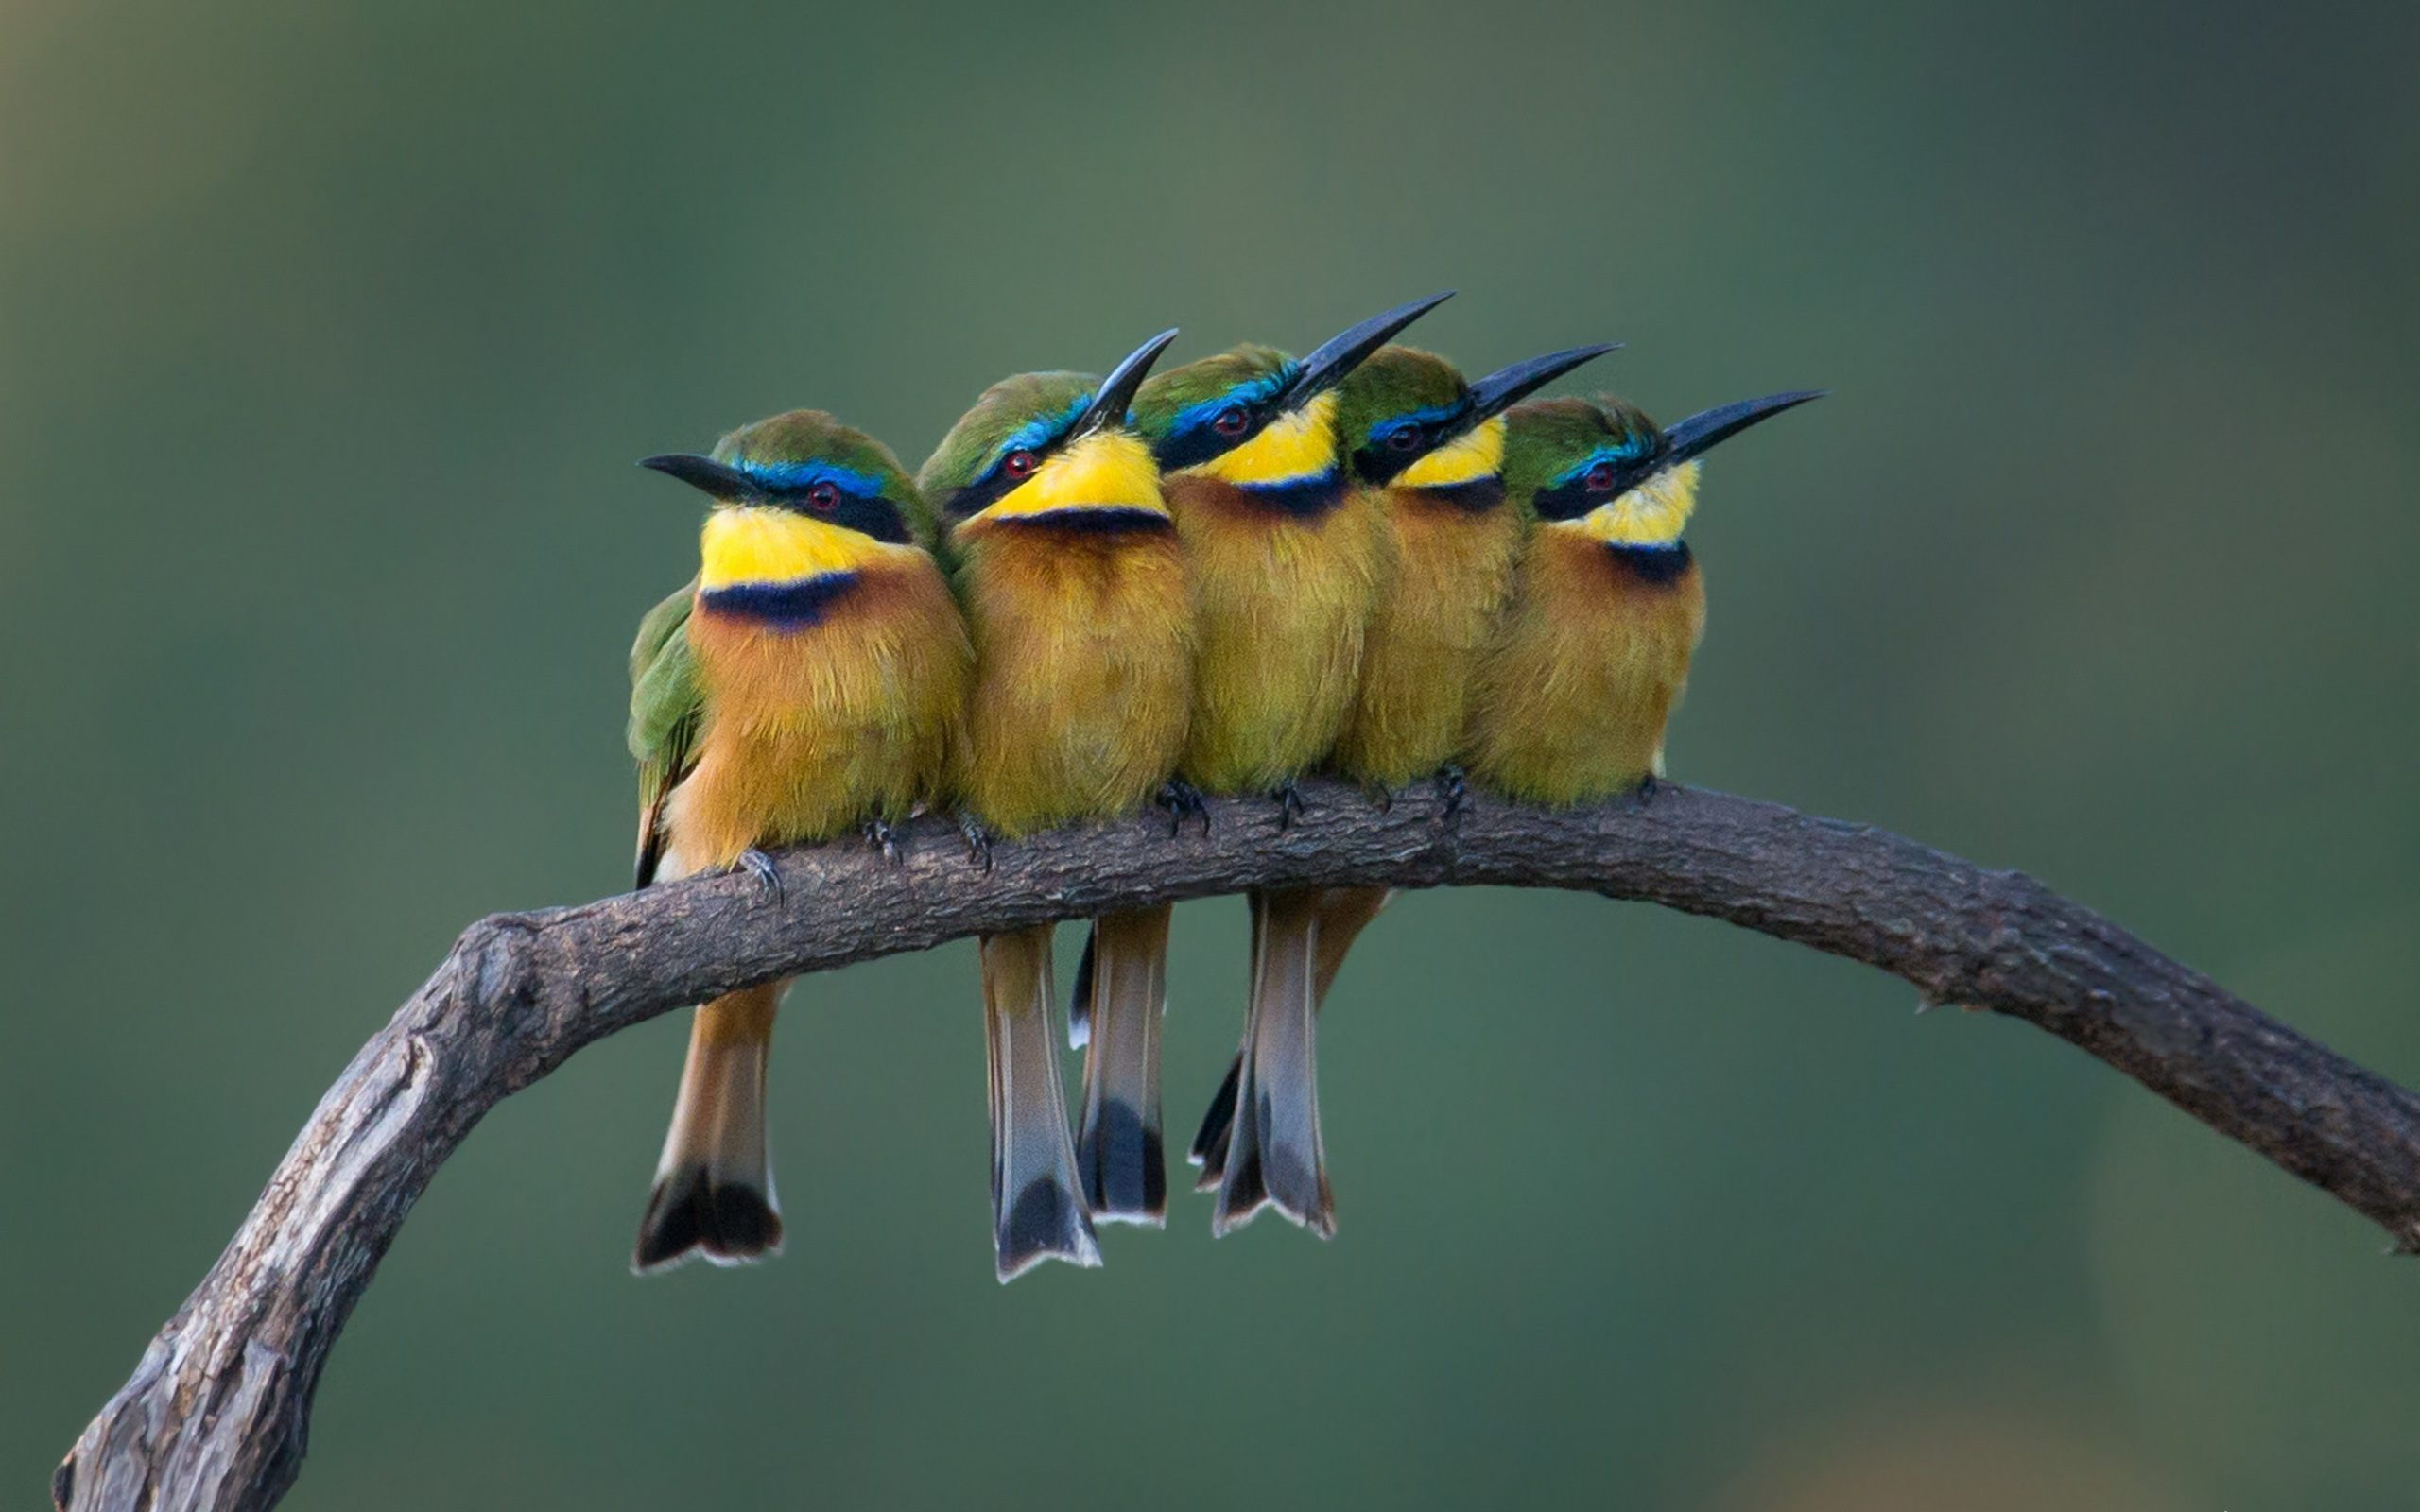 bee eater bird | bee eaters birds wallpaper free download in high